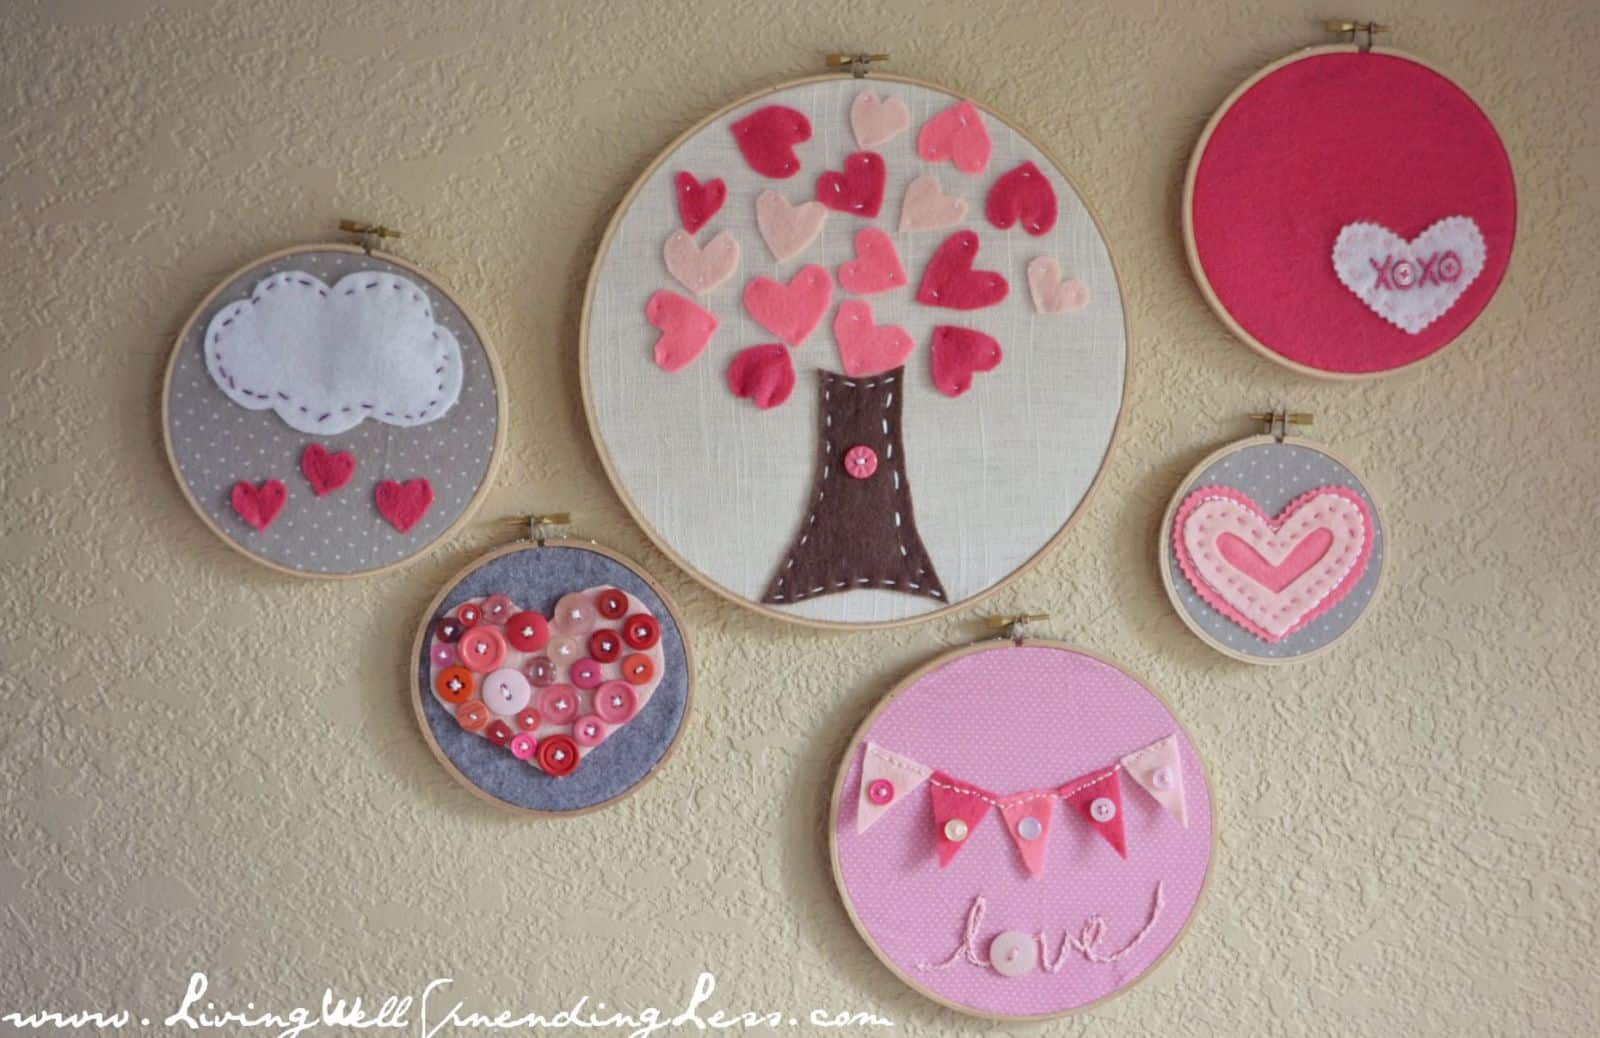 Fun valentines day crafts - 12 Simple And Sweet Valentine S Day Crafts